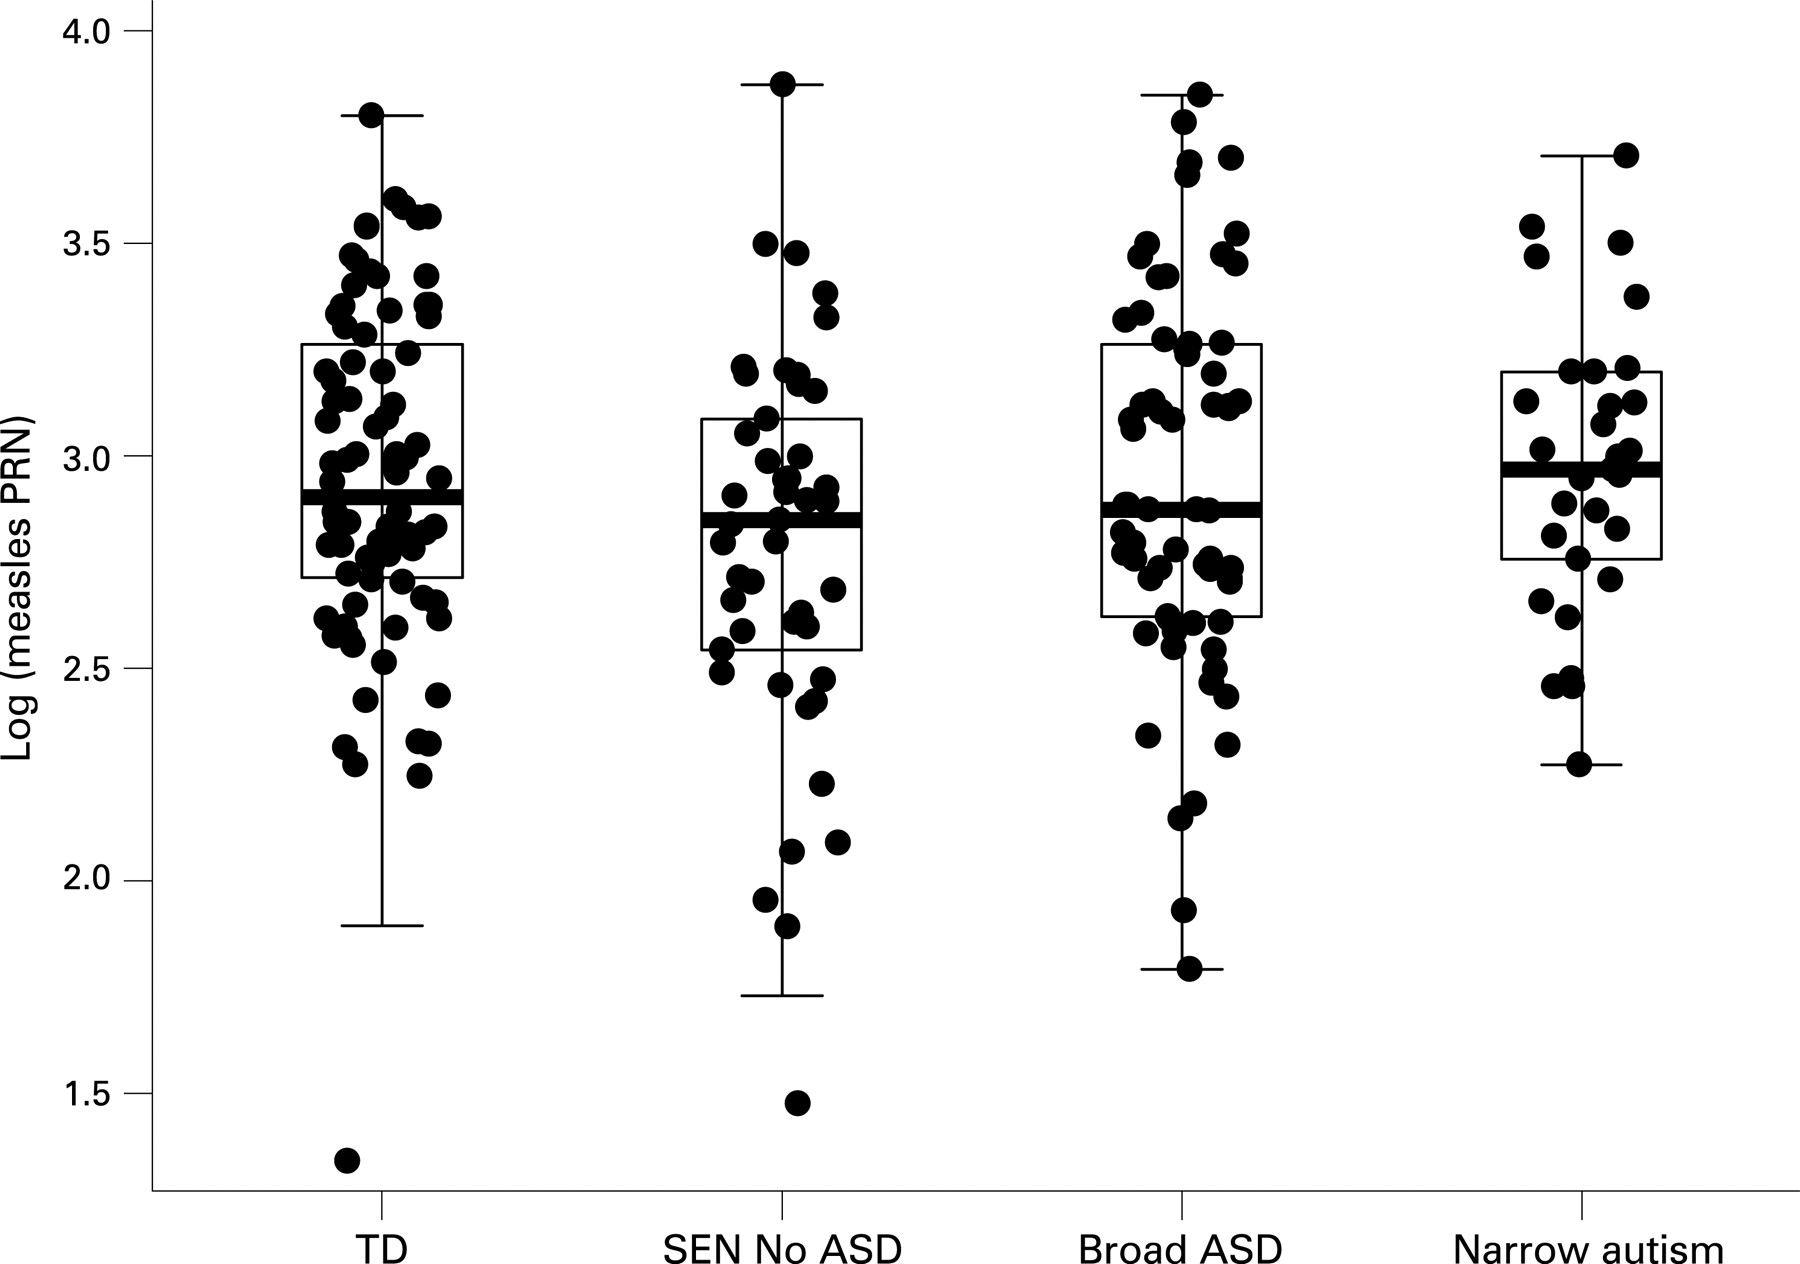 Measles vaccination and antibody response in autism spectrum